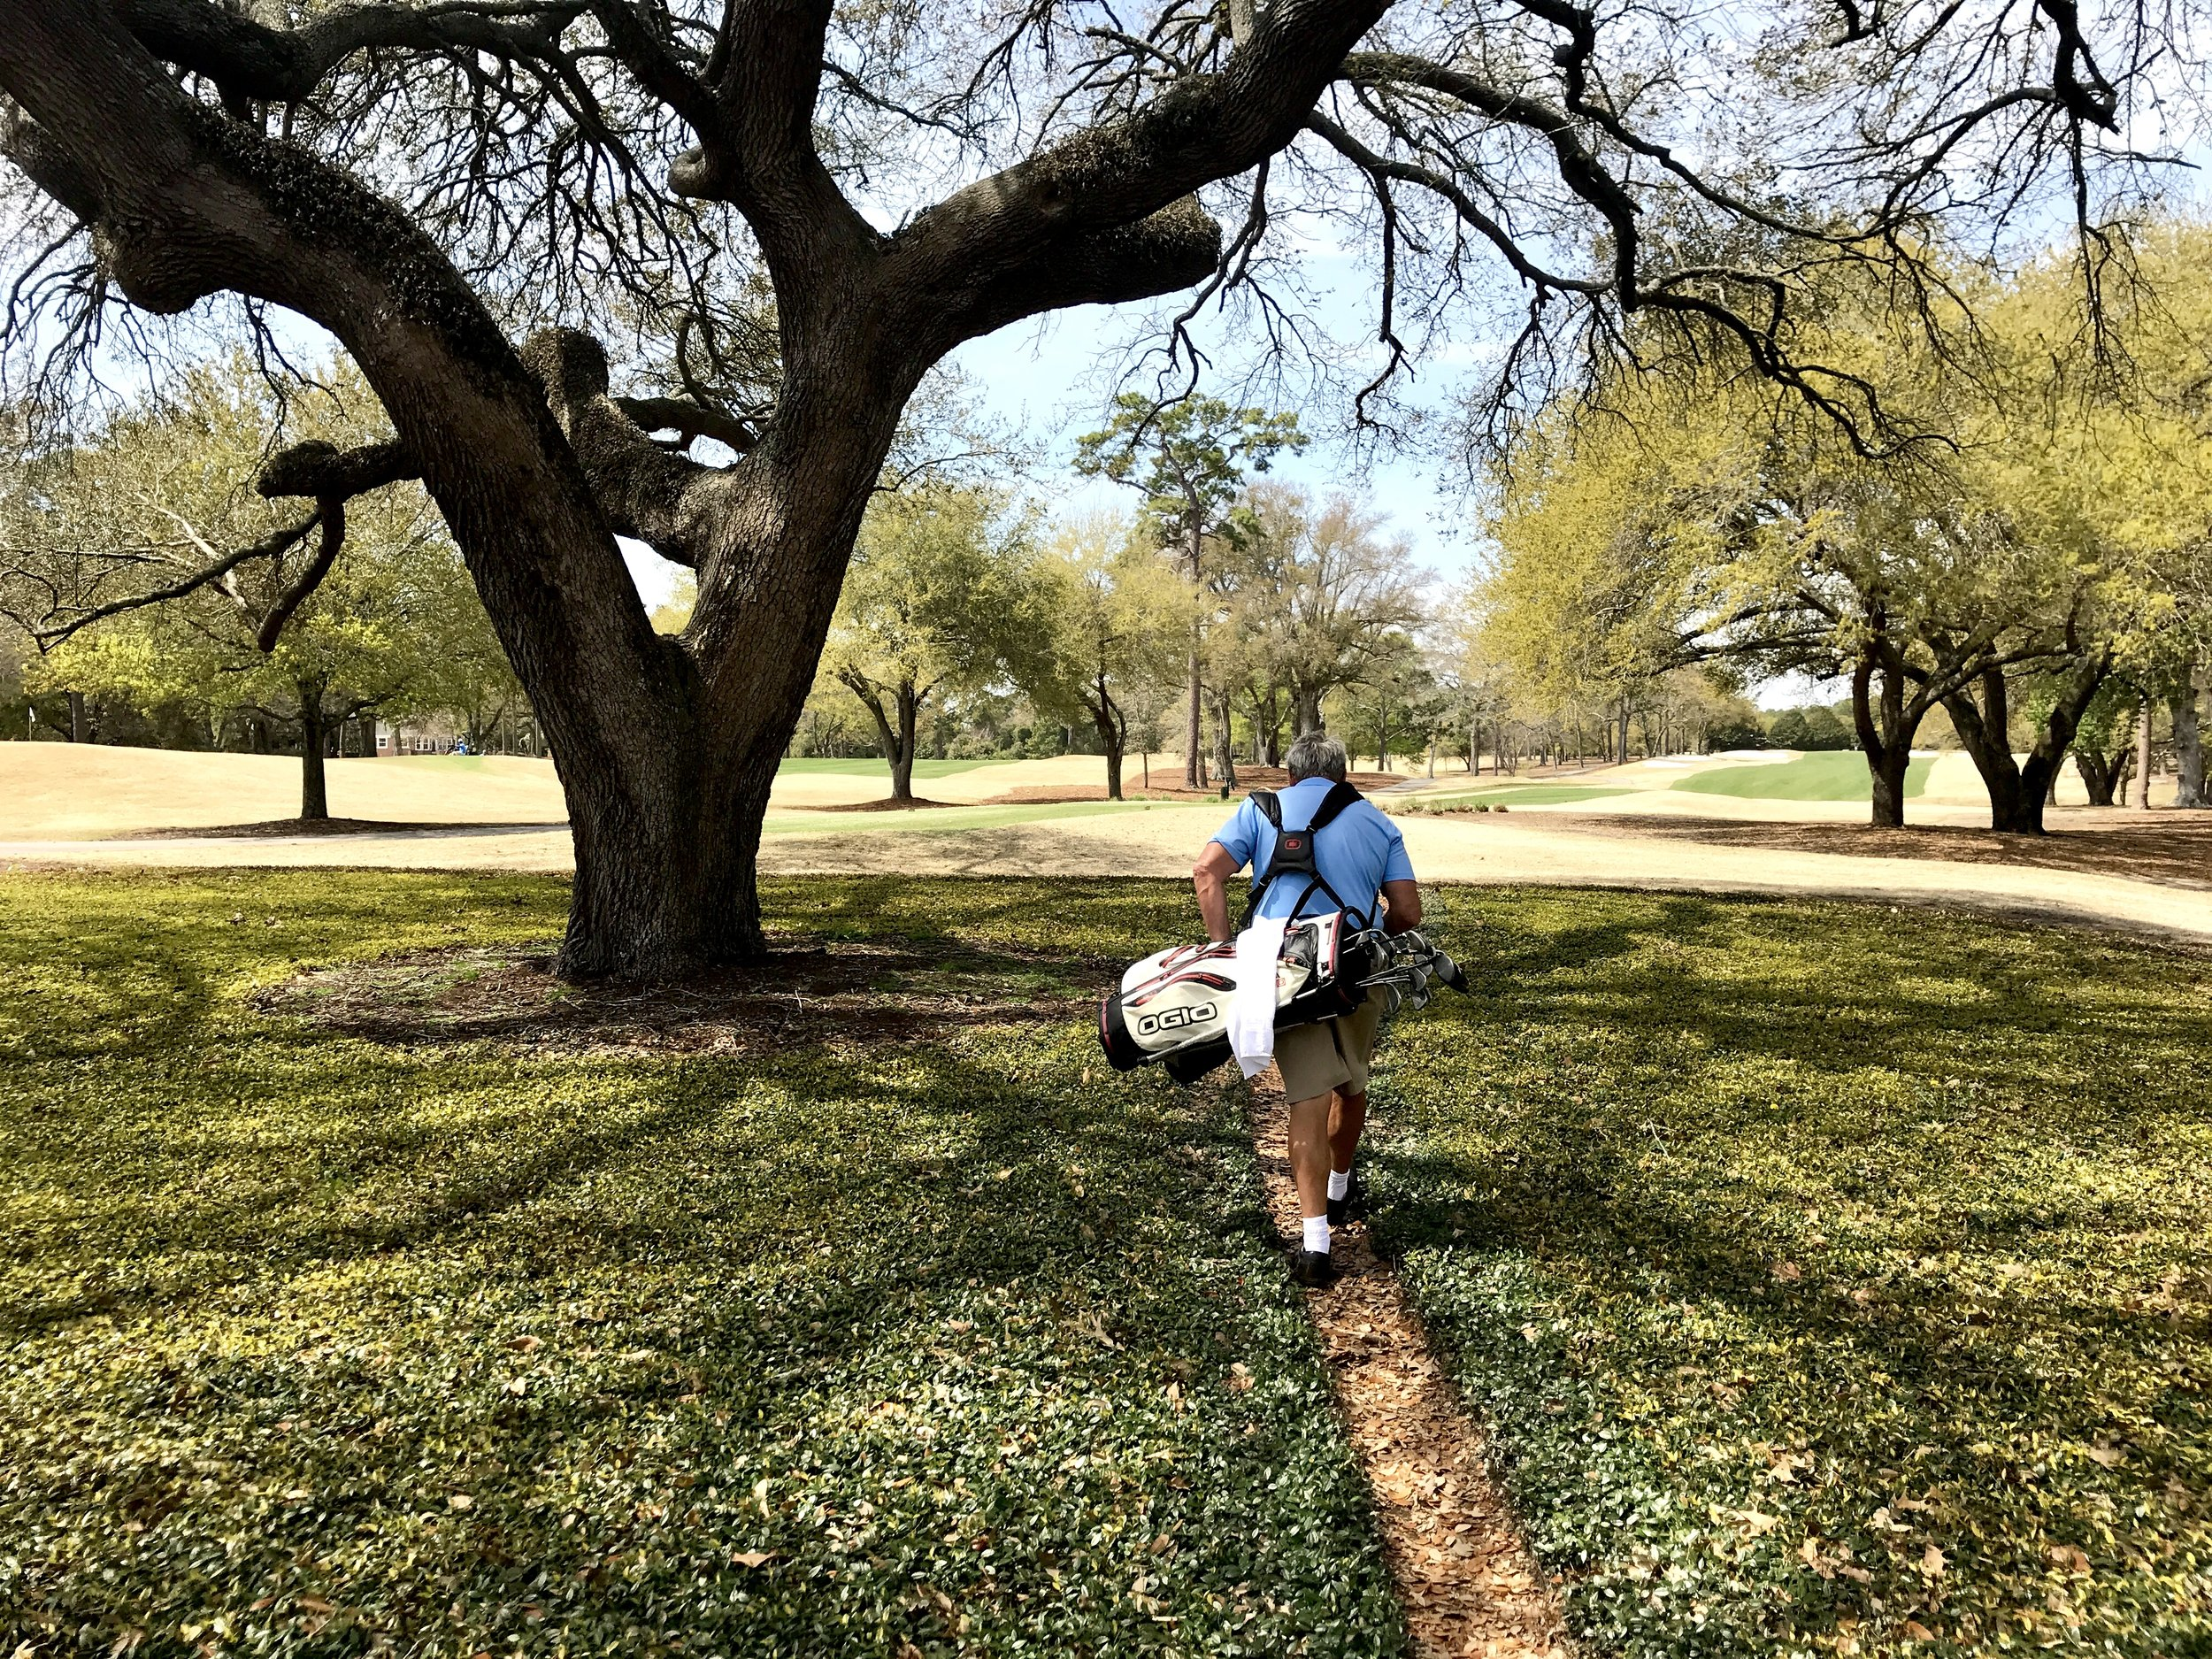 Longtime Dunes Club member Tommy Brittain troupes through paths maintained for the convenience of the club's substantial contingent of walkers.